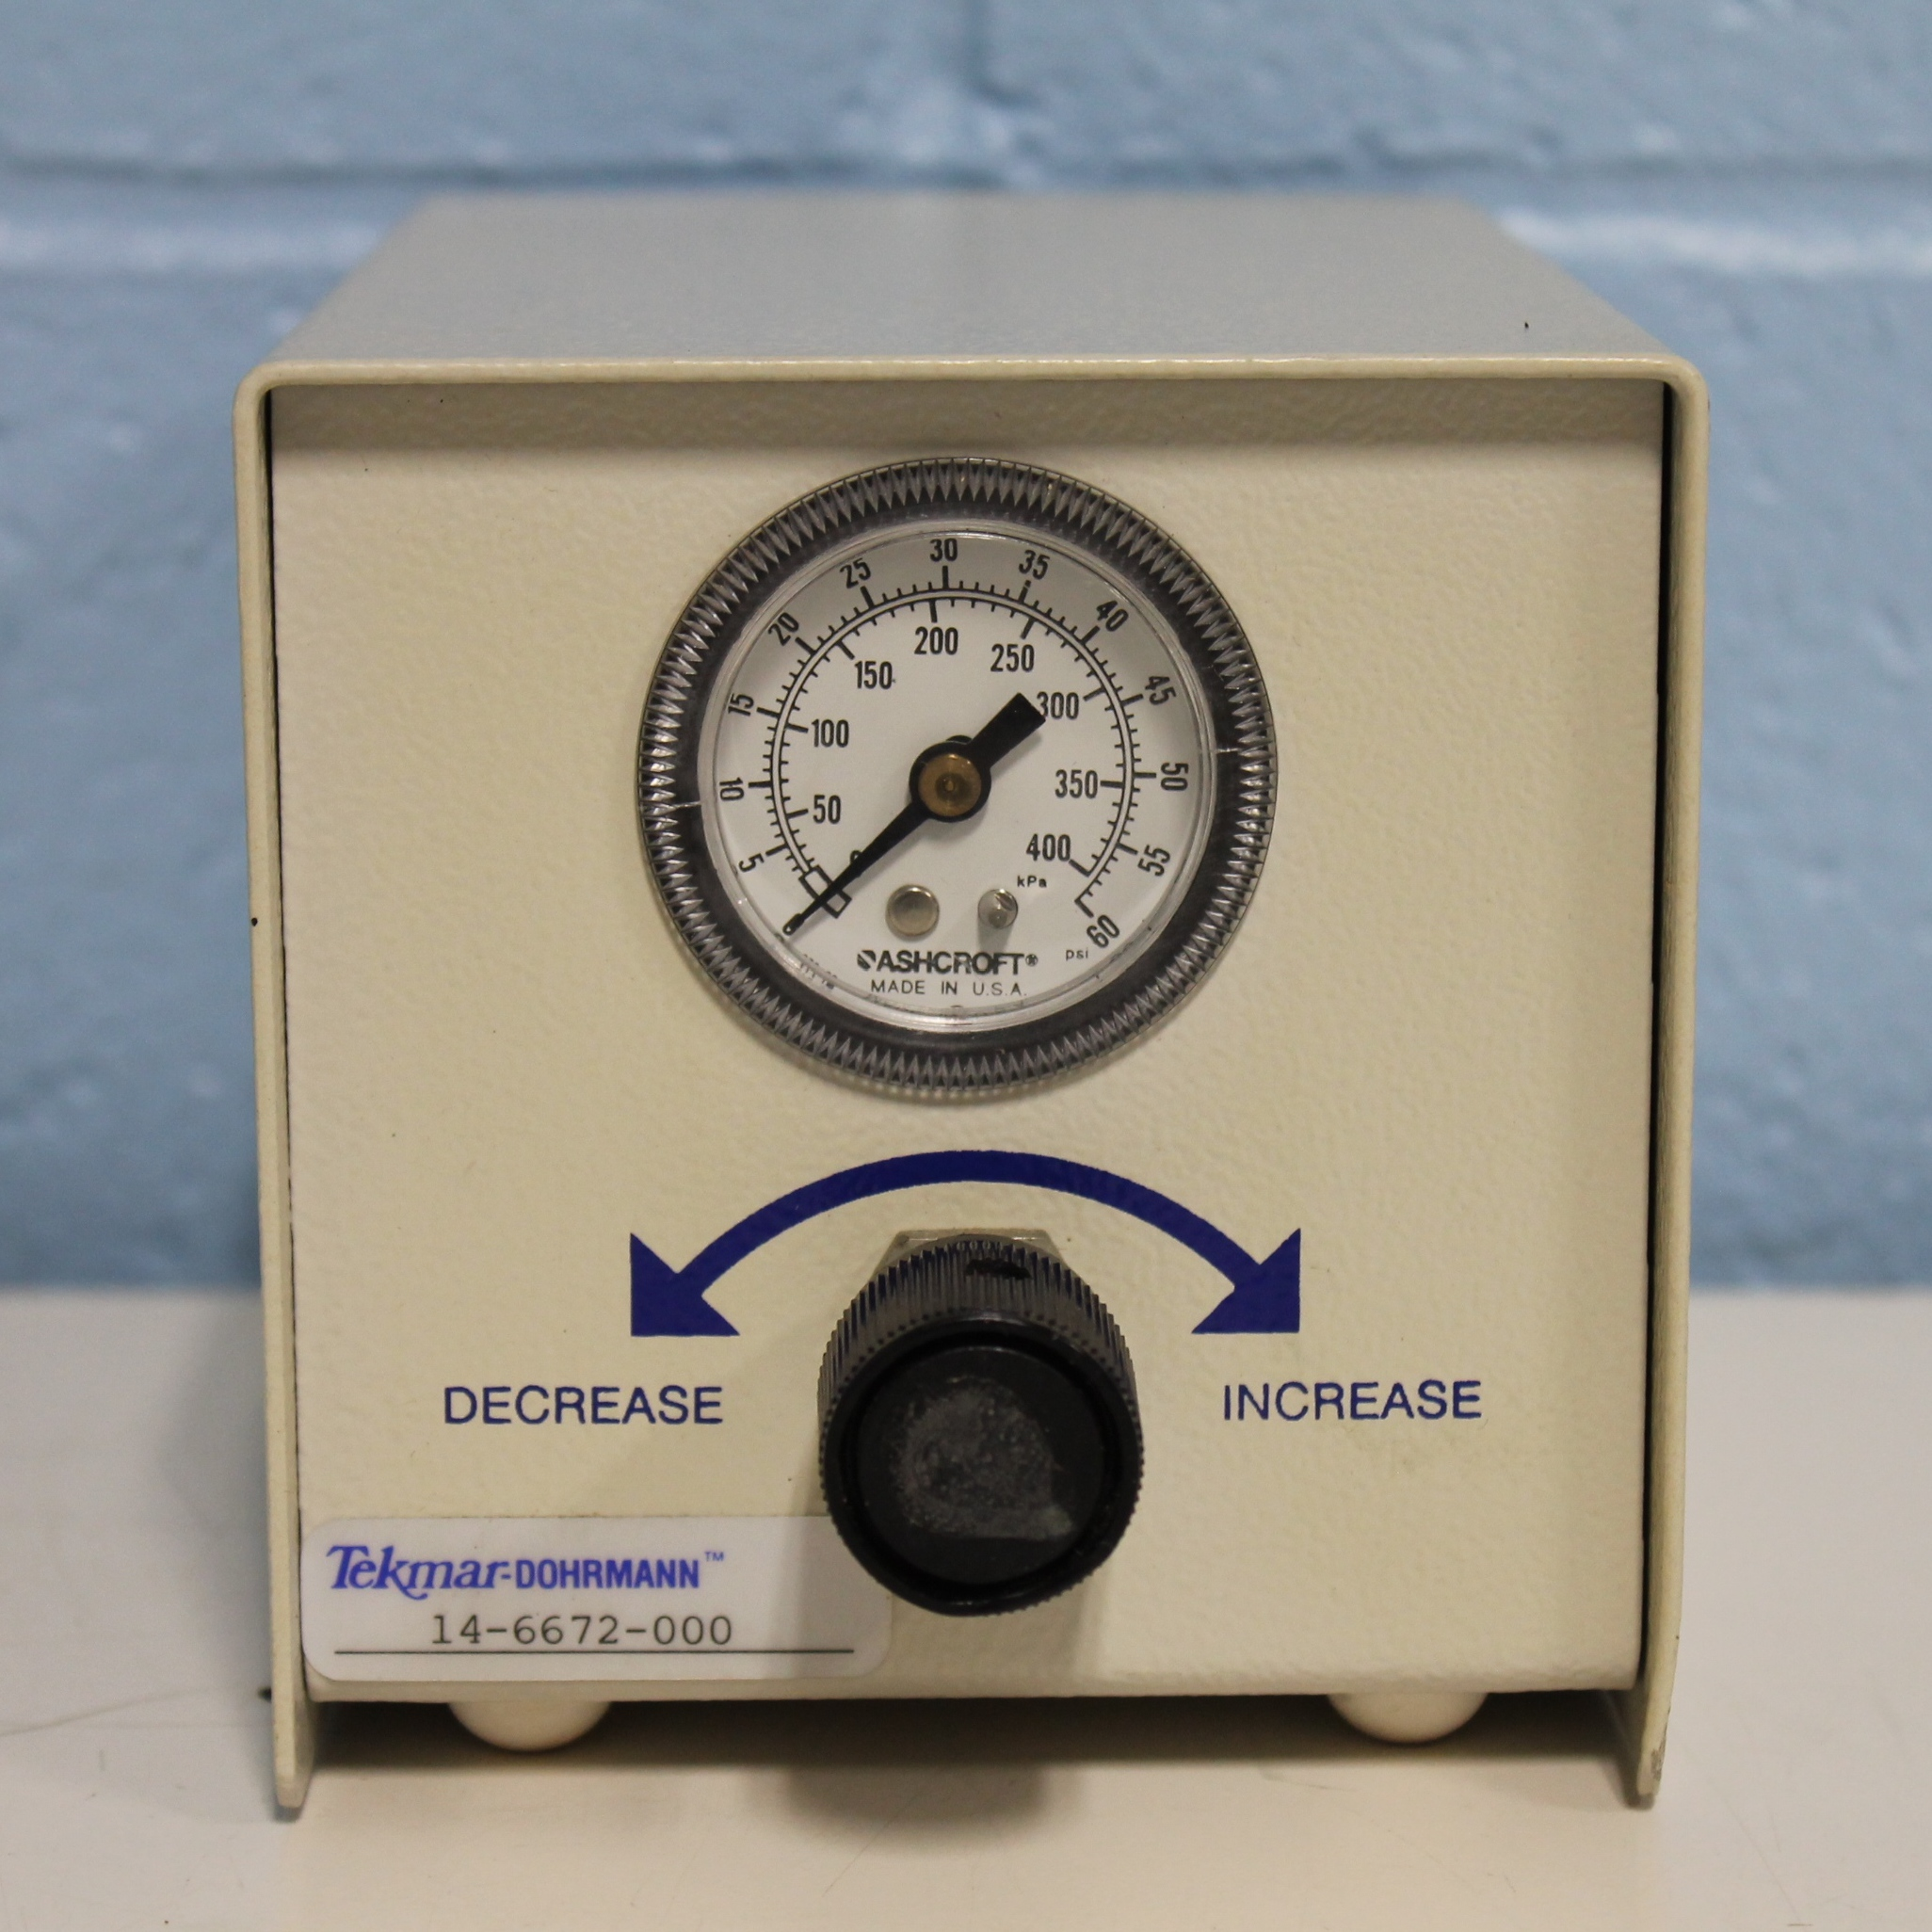 Tekmar Pressure Regulator Model 14-6672-000 Image